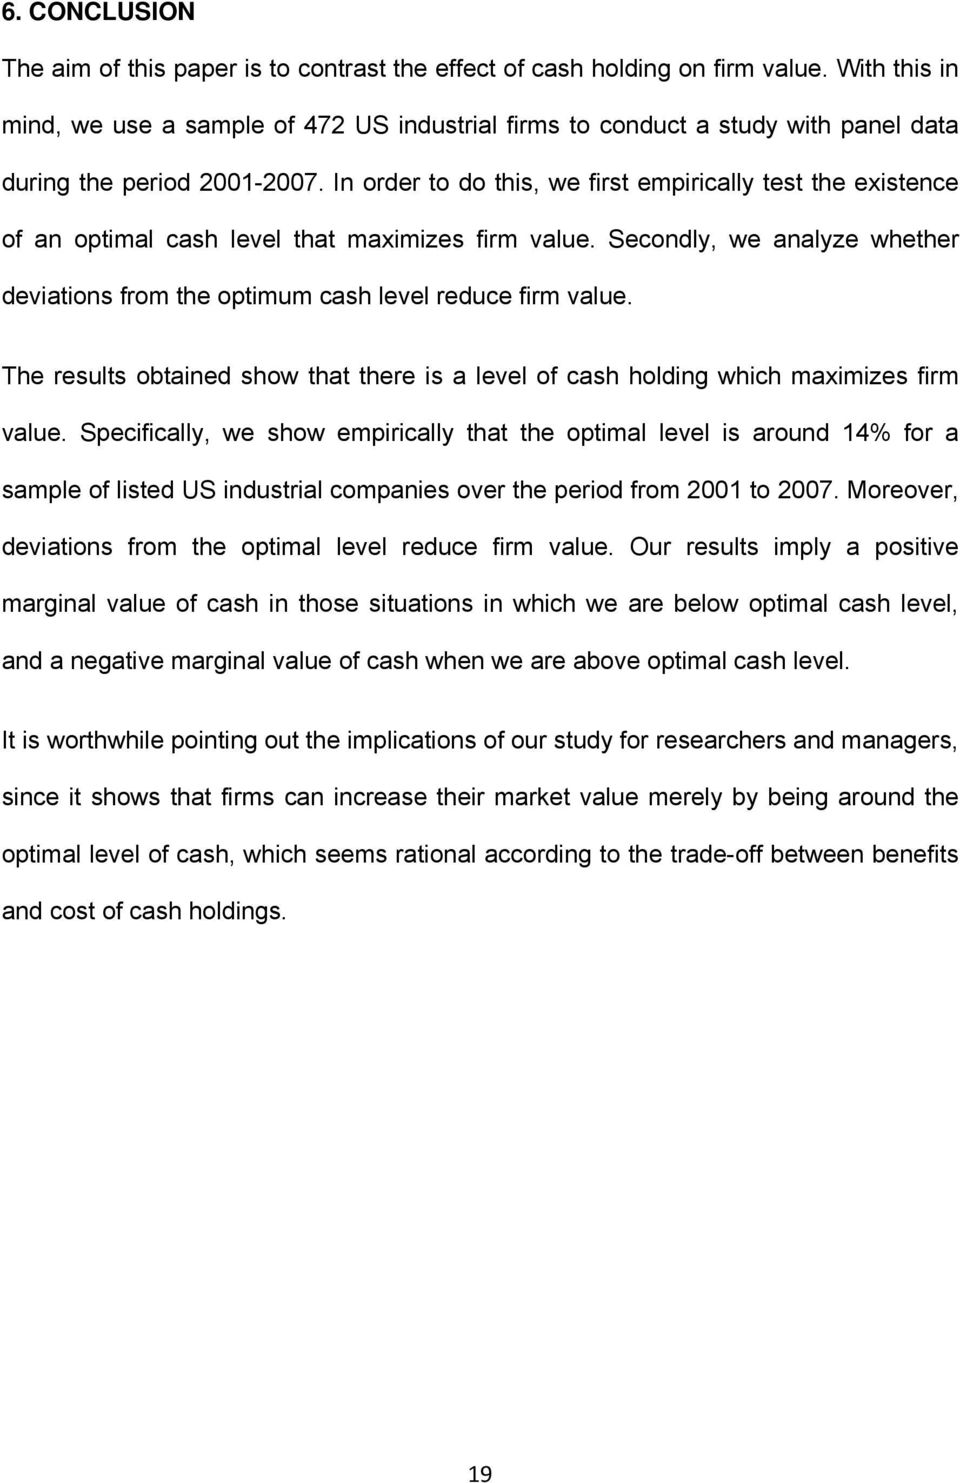 In order to do this, we first empirically test the existence of an optimal cash level that maximizes firm value. Secondly, we analyze whether deviations from the optimum cash level reduce firm value.